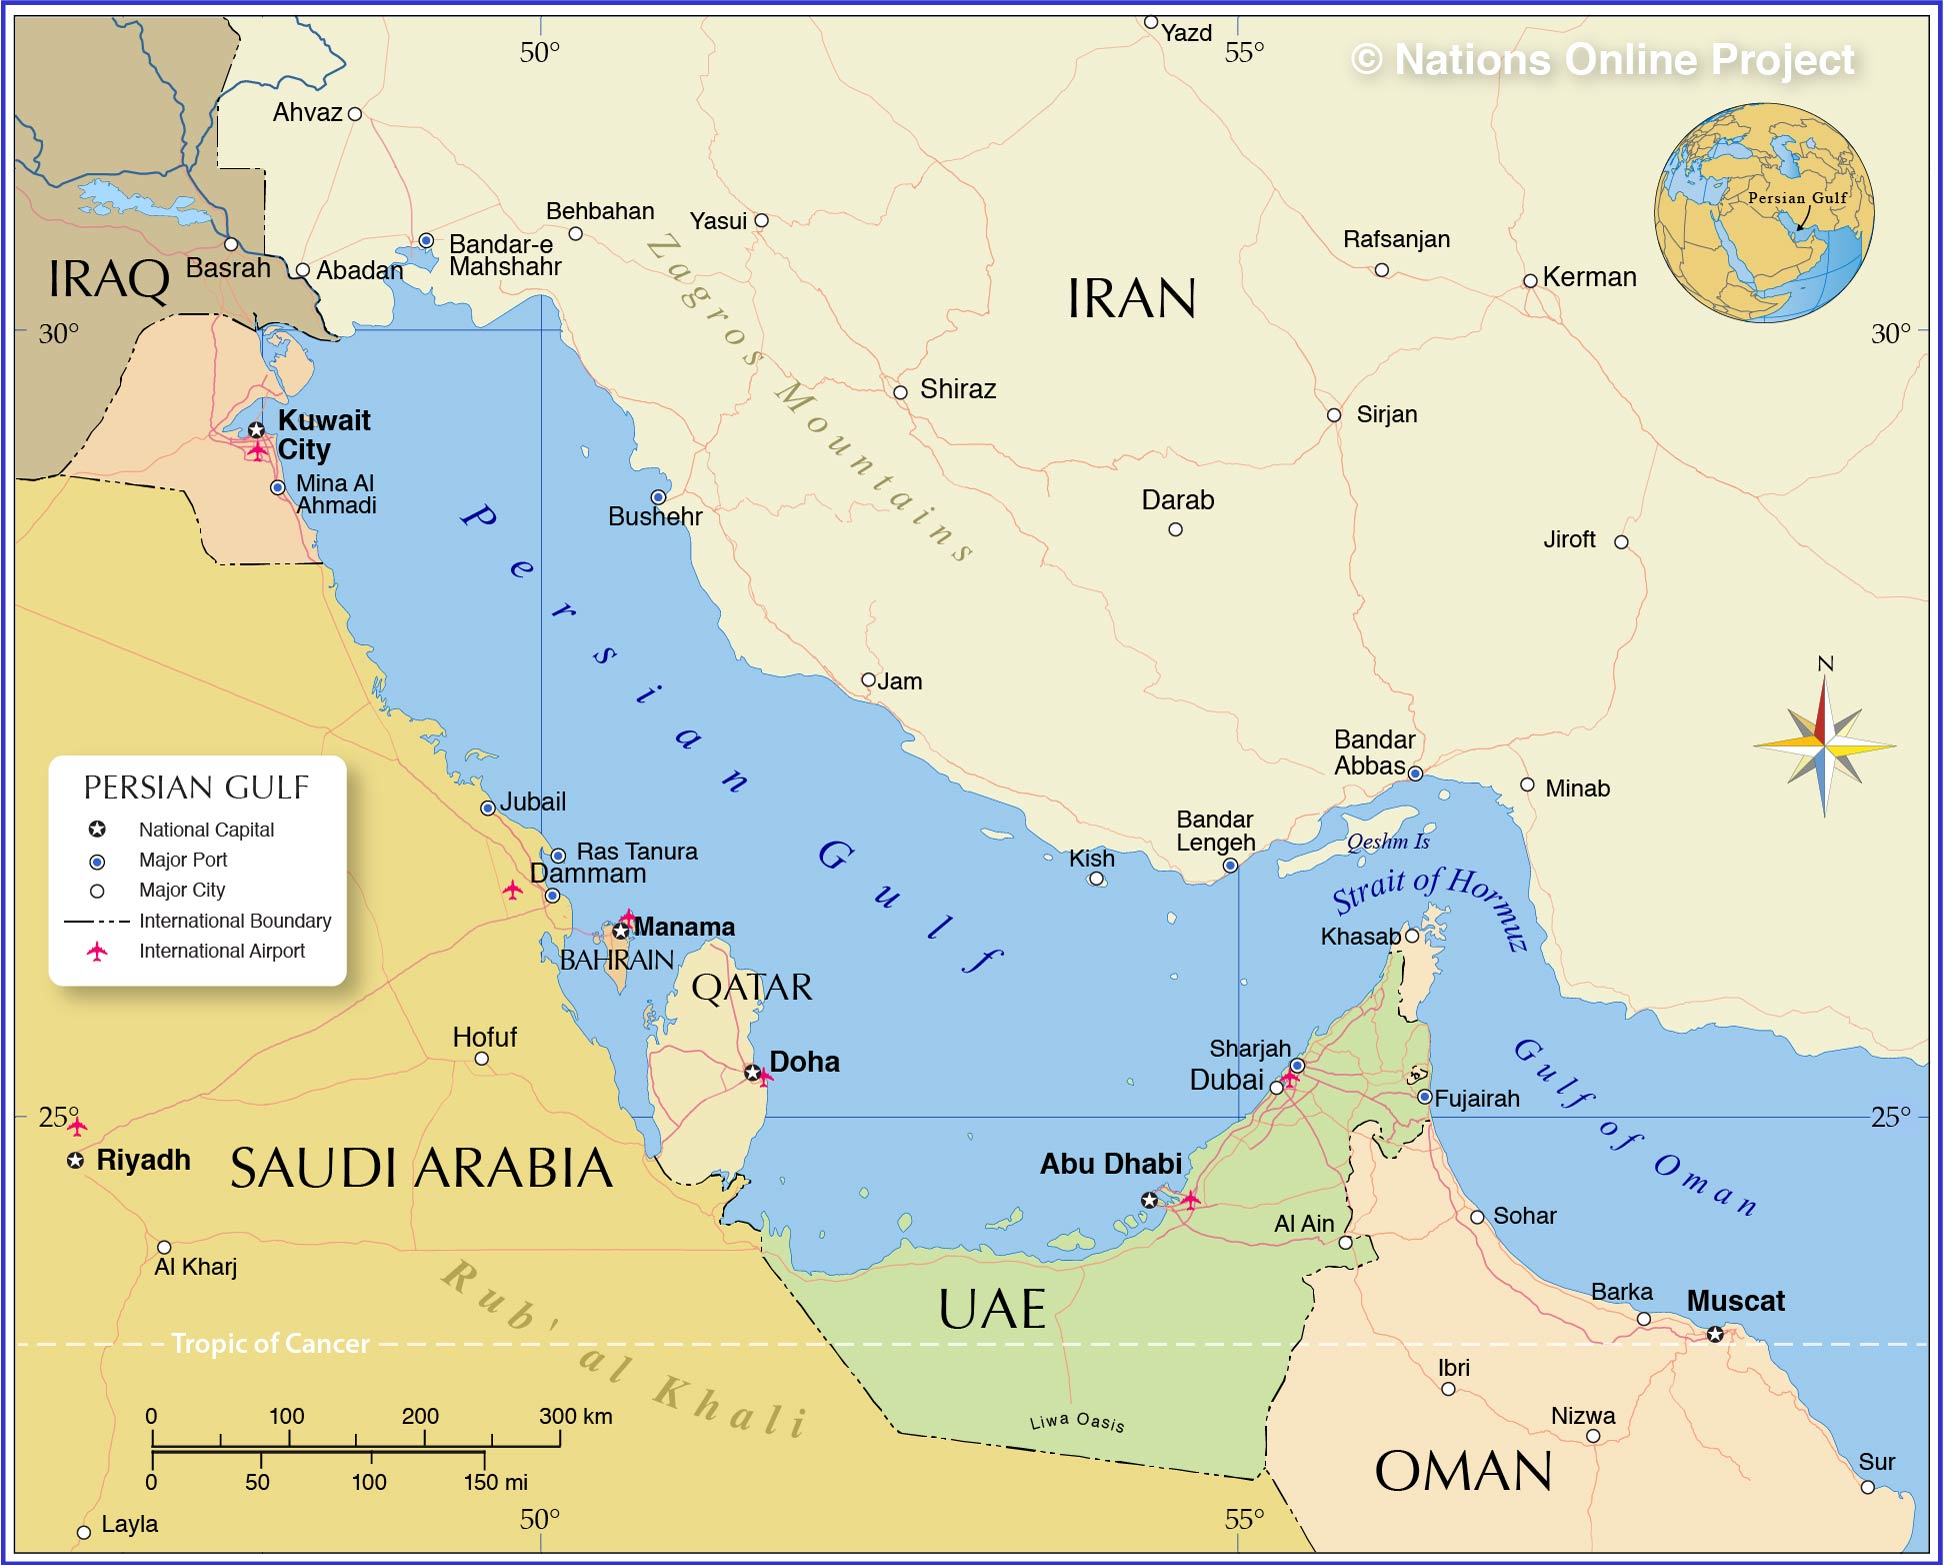 Persian Gulf Map From Nationsonline 1